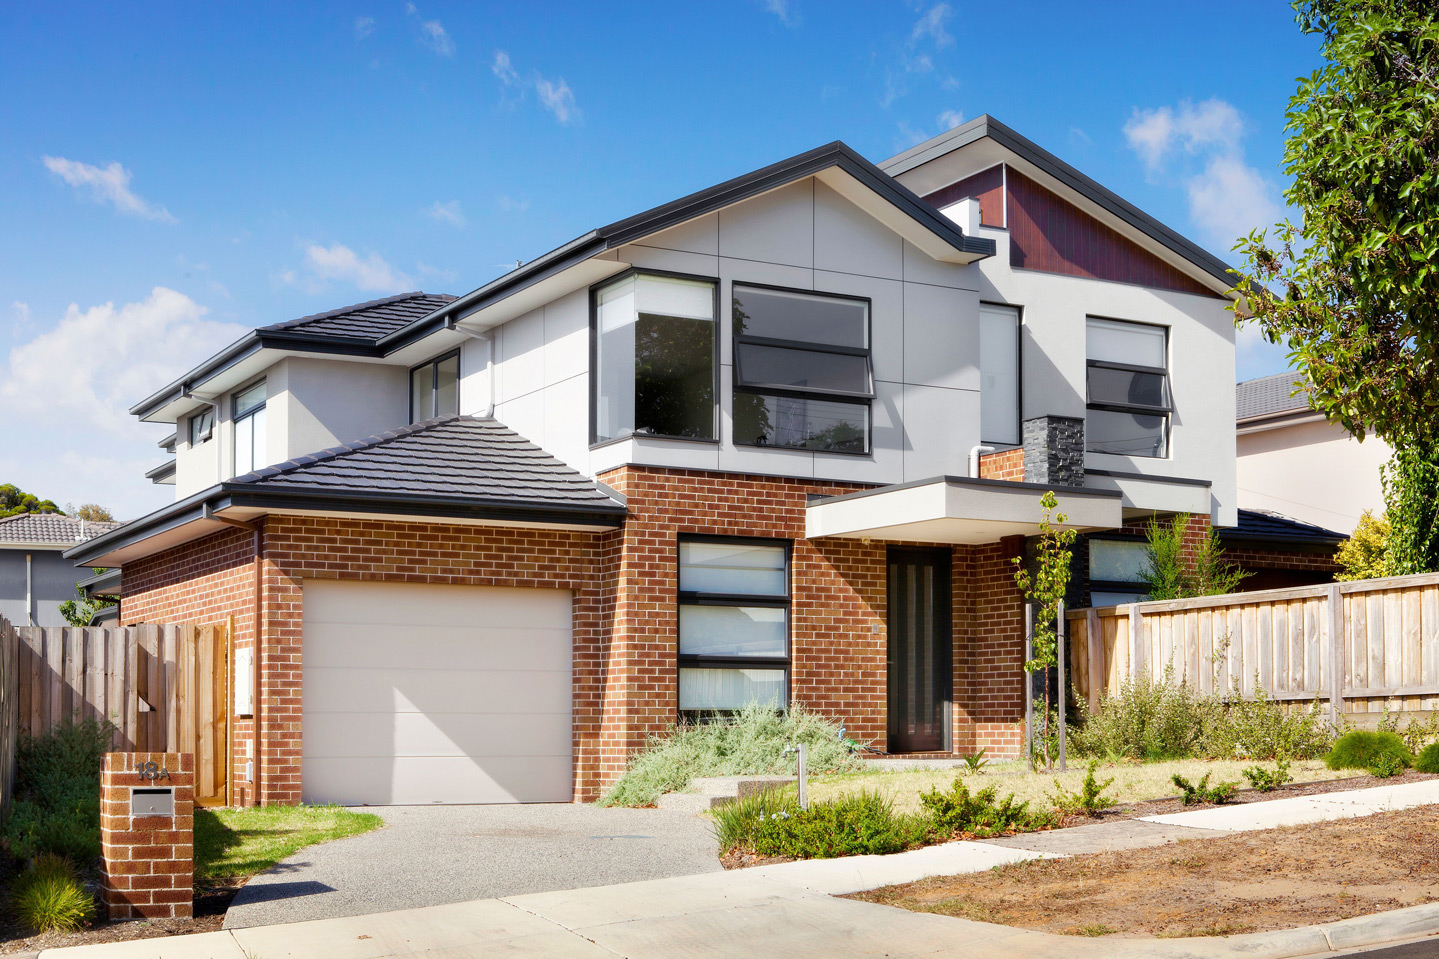 18 Binalong Ave Chadstone - Chadstone eastern suburbs property development